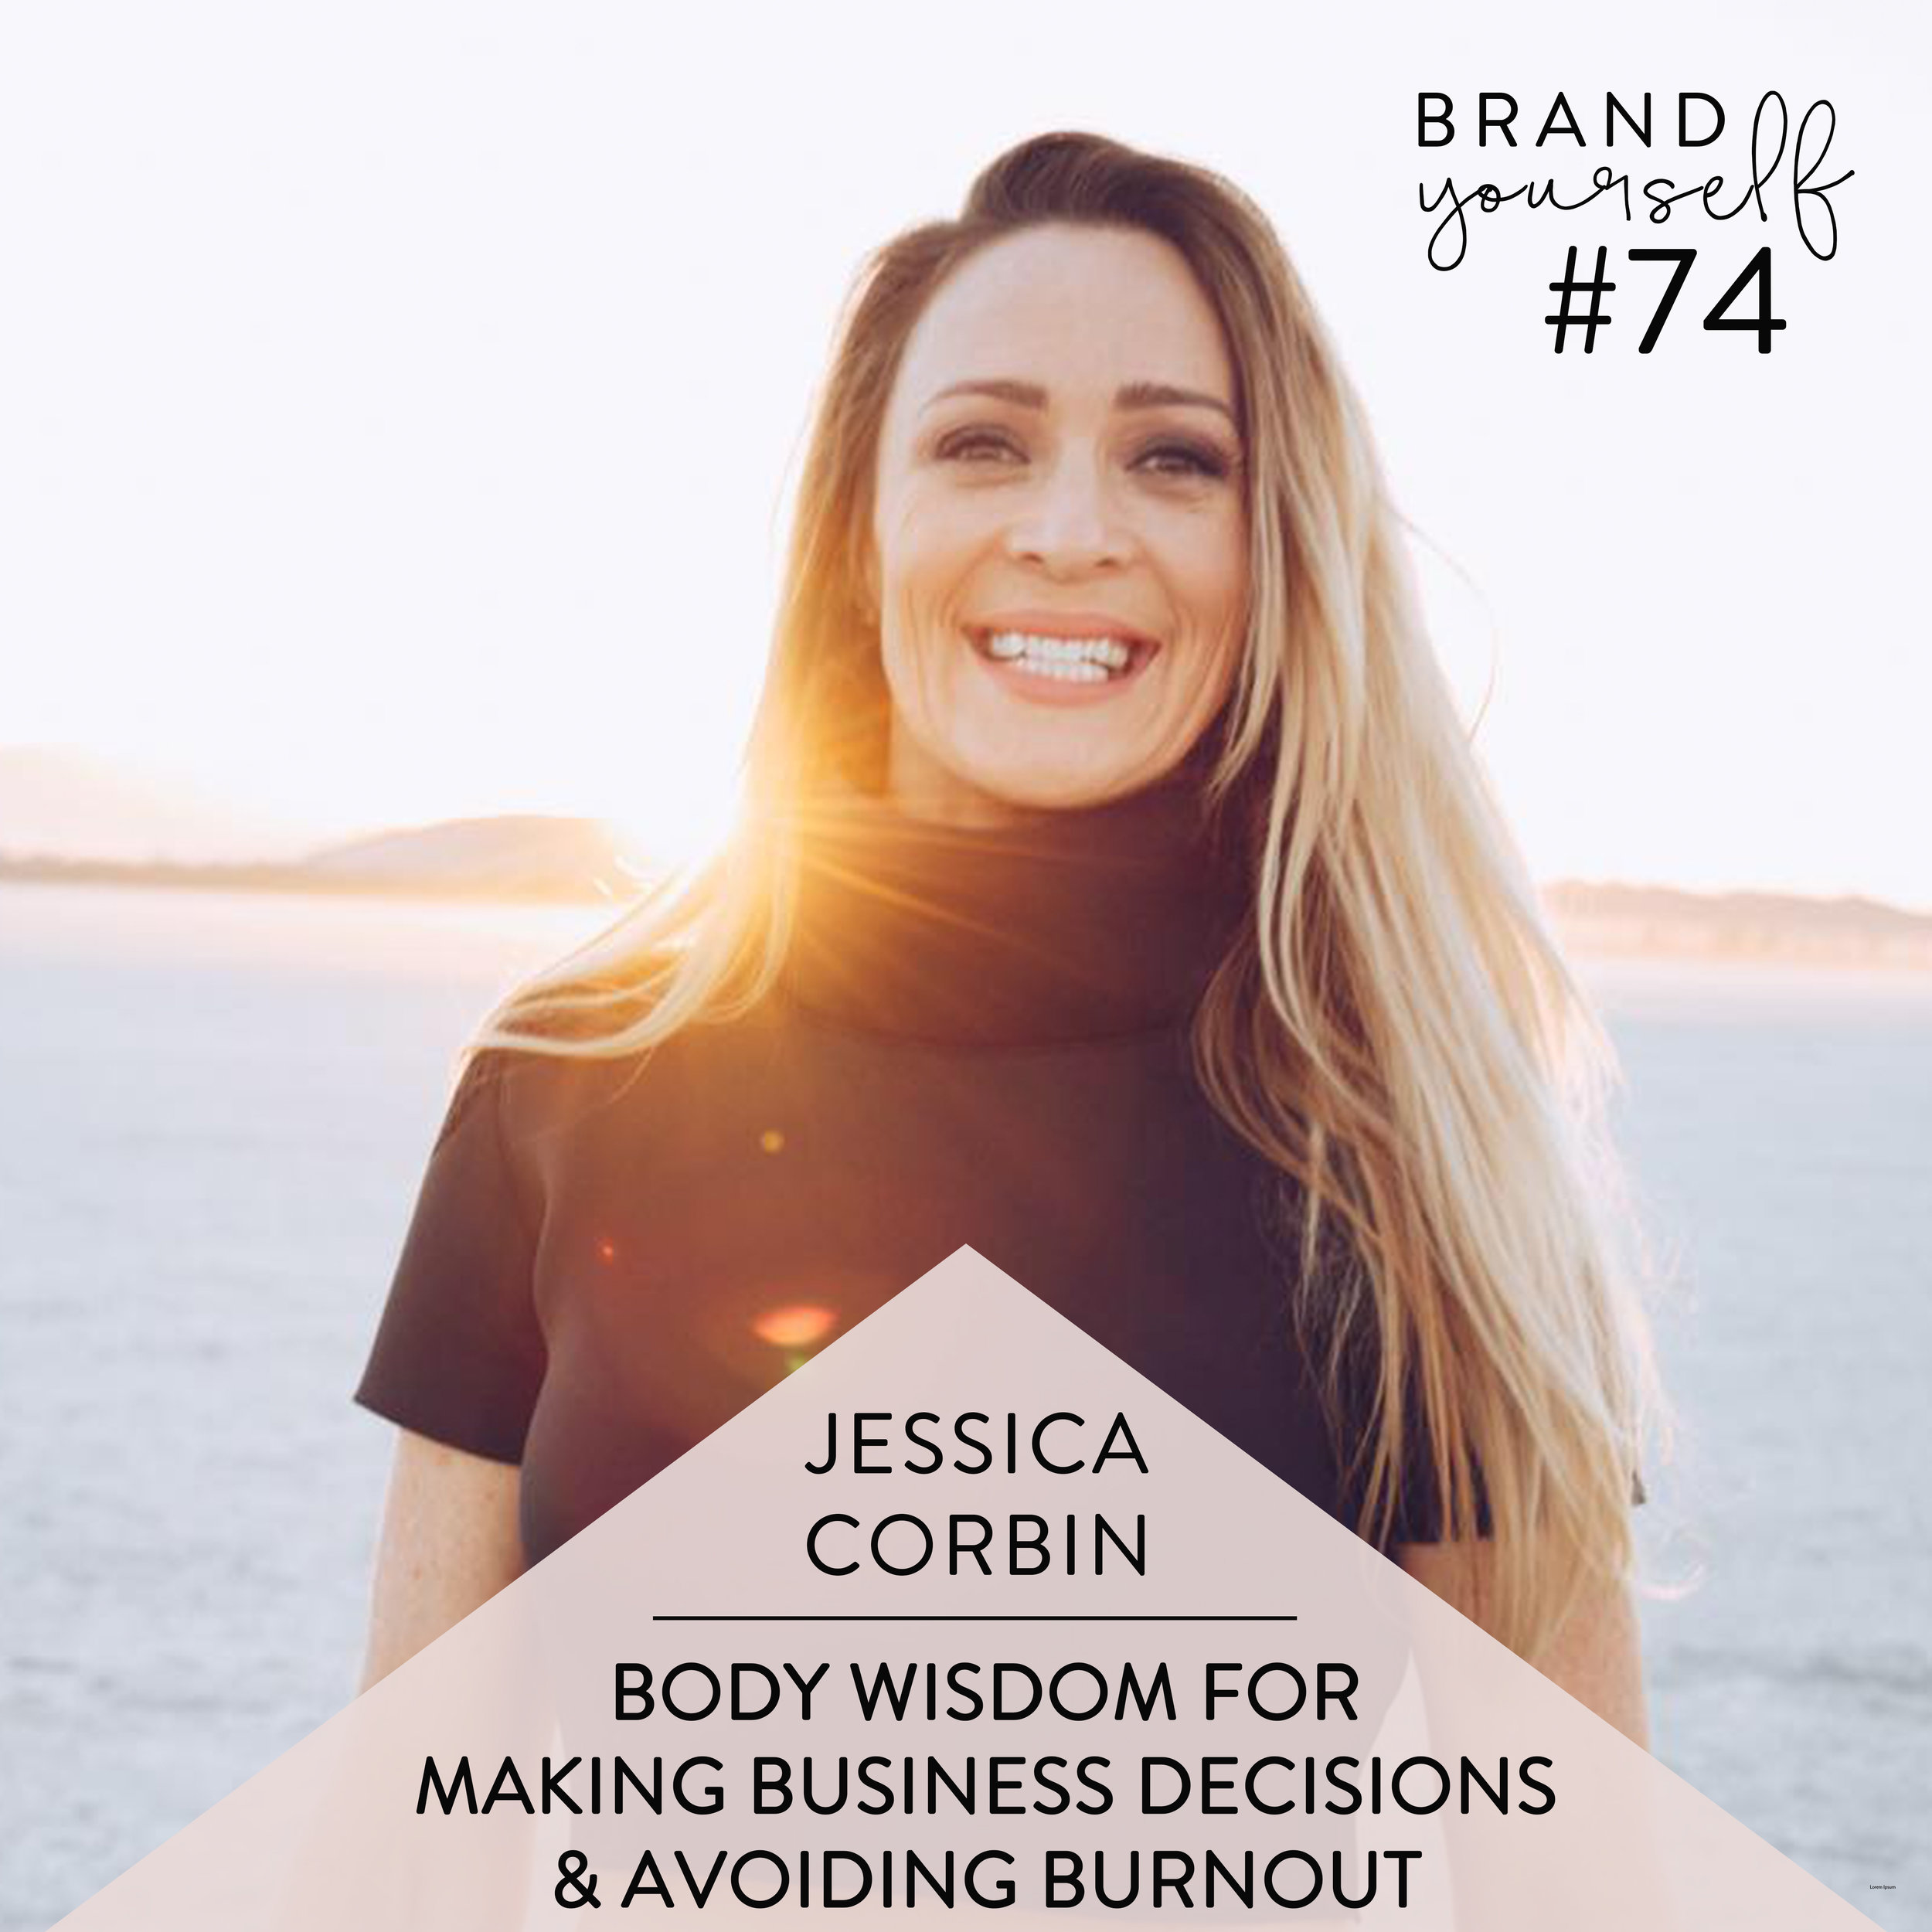 Wisdom for building business without burning out - Marketing Guru Blair Badenhop sits down with Jessica Corbin to talk about how to leverage your natural born wisdom to build business without burning out. Check out the full conversation here.